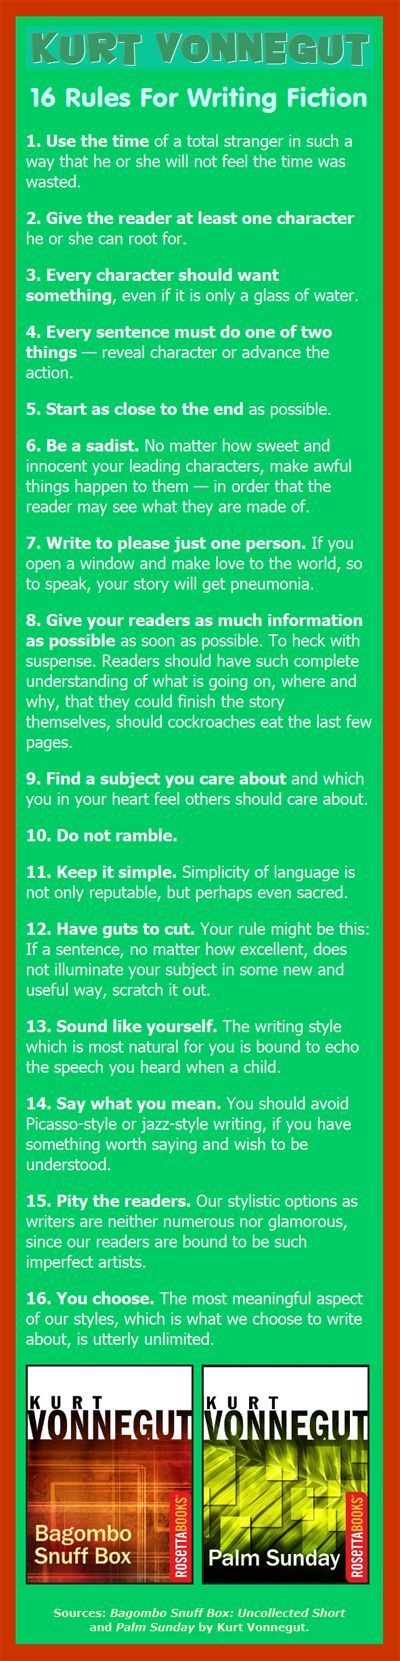 Kurt Vonnegut on Writing Fiction: 16 rules ... 16. You choose. The most meaningful aspect of our styles, which is what we choose to write about, is utterly unlimited.: